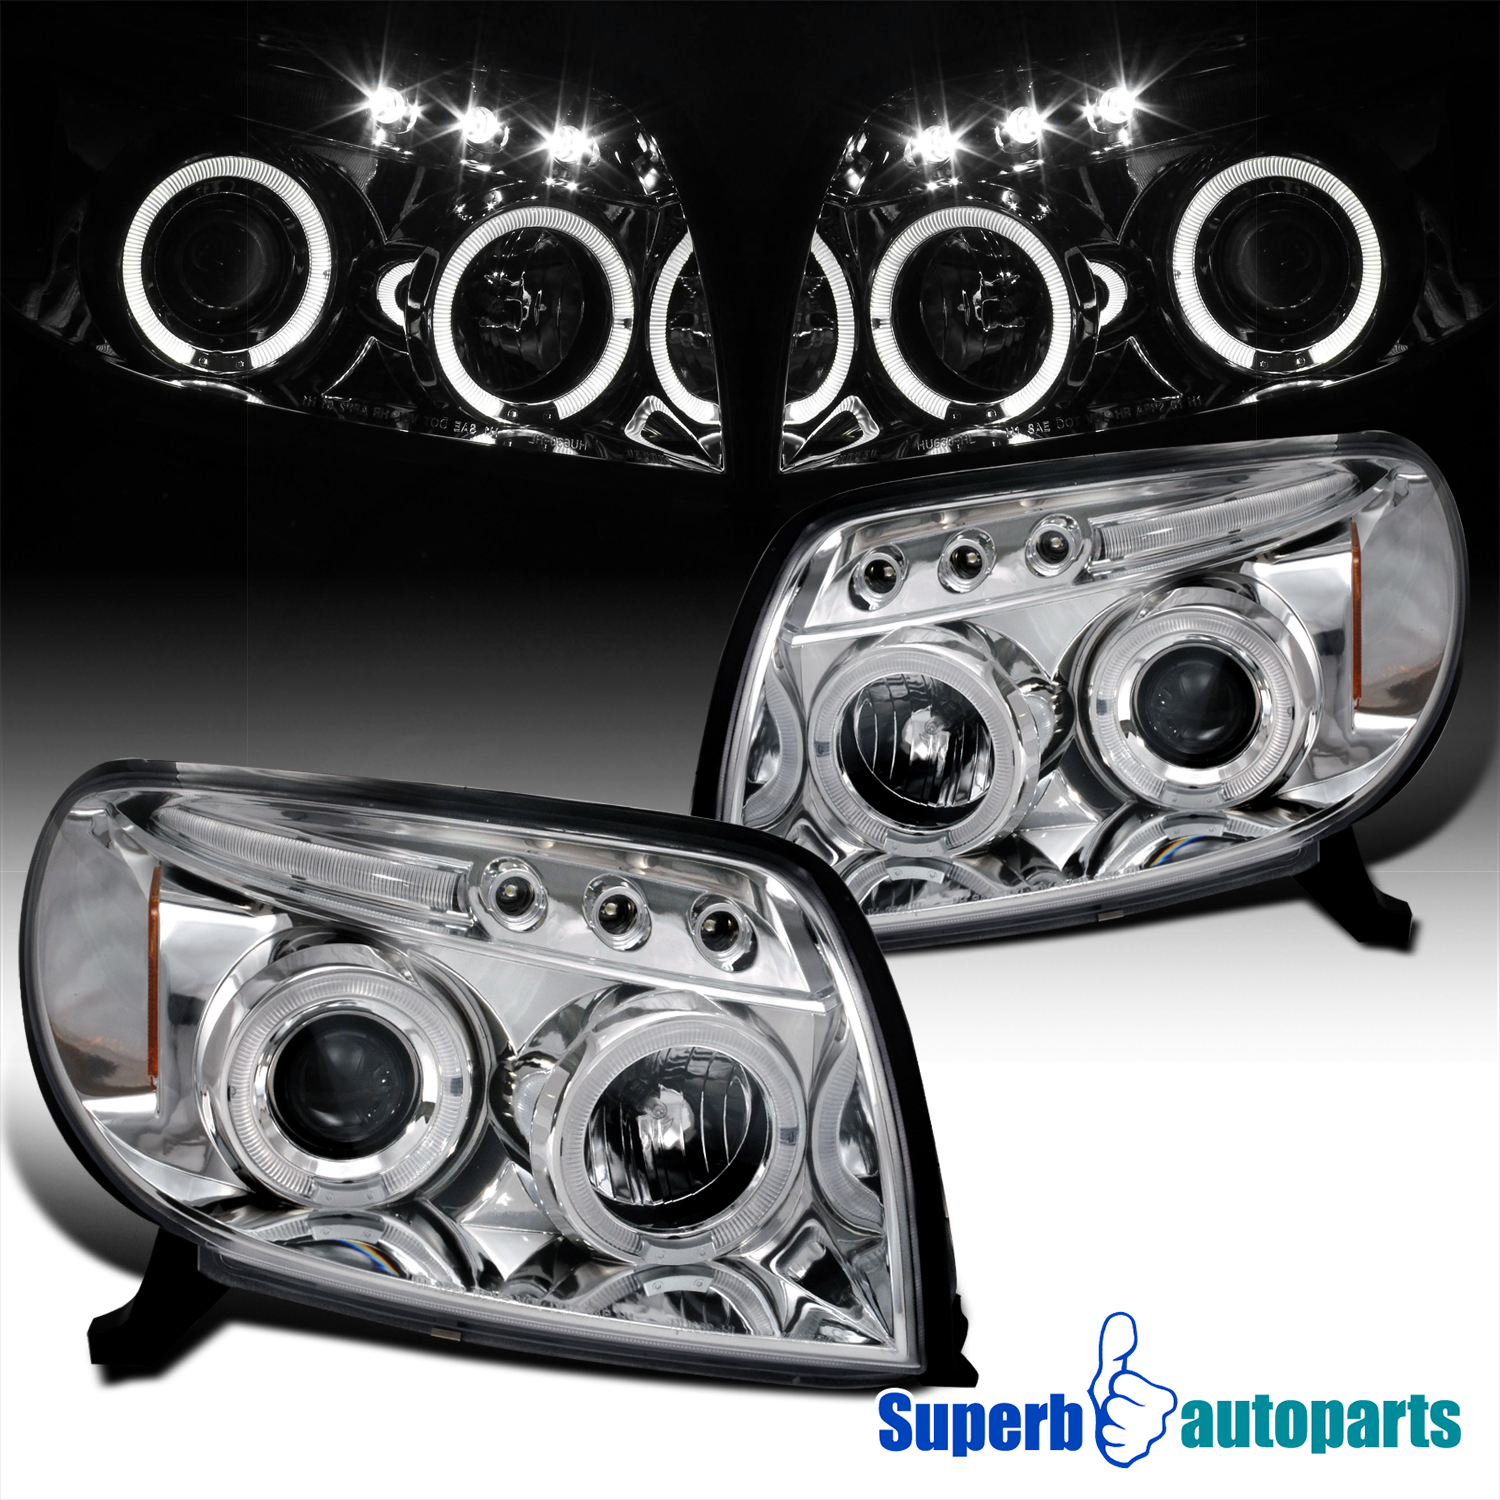 Details about For 2003-2005 Toyota 4Runner LED Halo Projector Headlights  Lamps Replacement